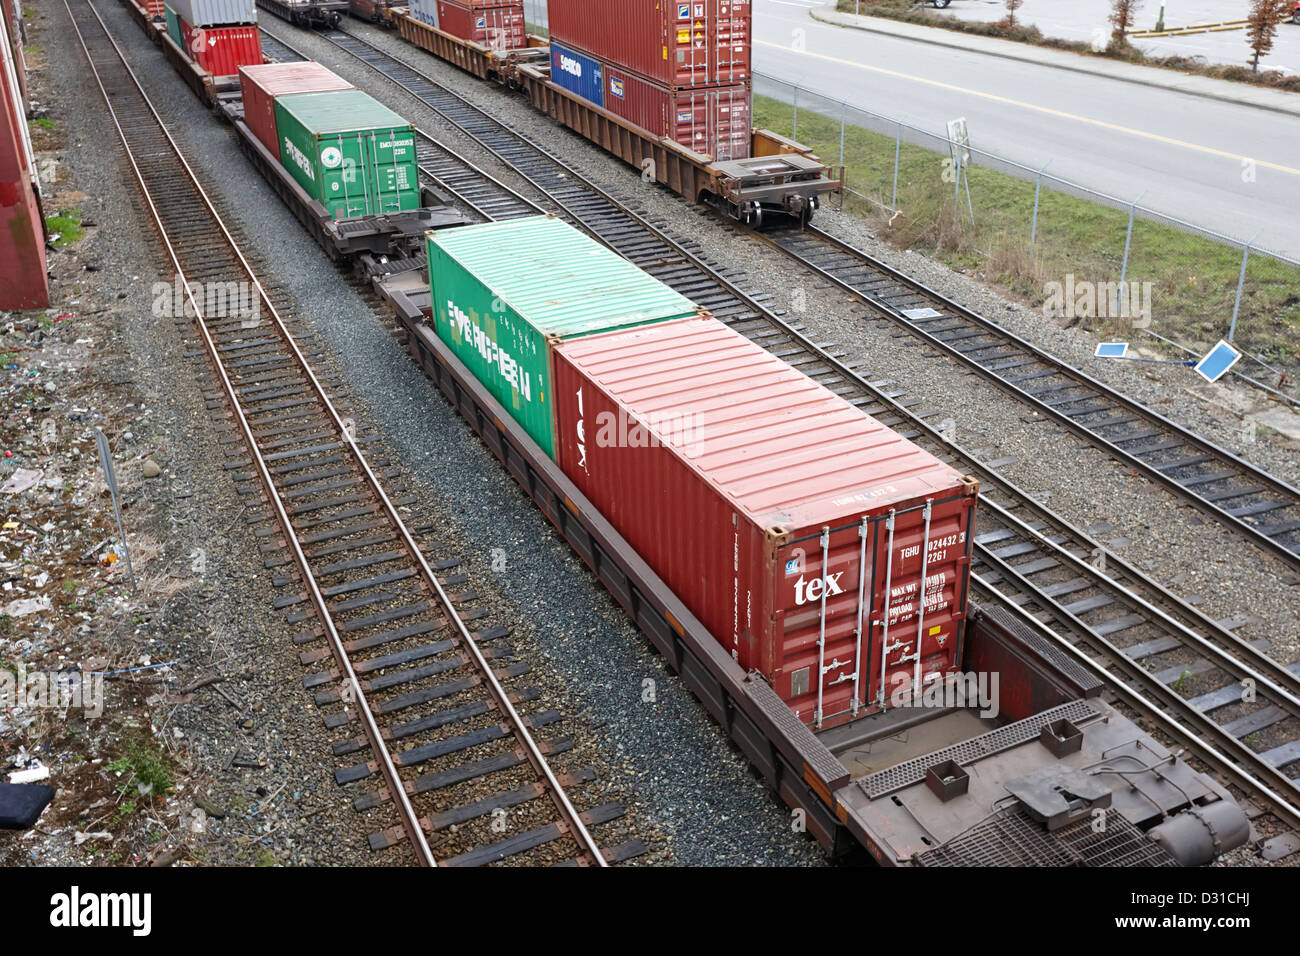 evergreen and tex freight shipping containers on rail cars freight train goods tracks Vancouver BC Canada Stock Photo